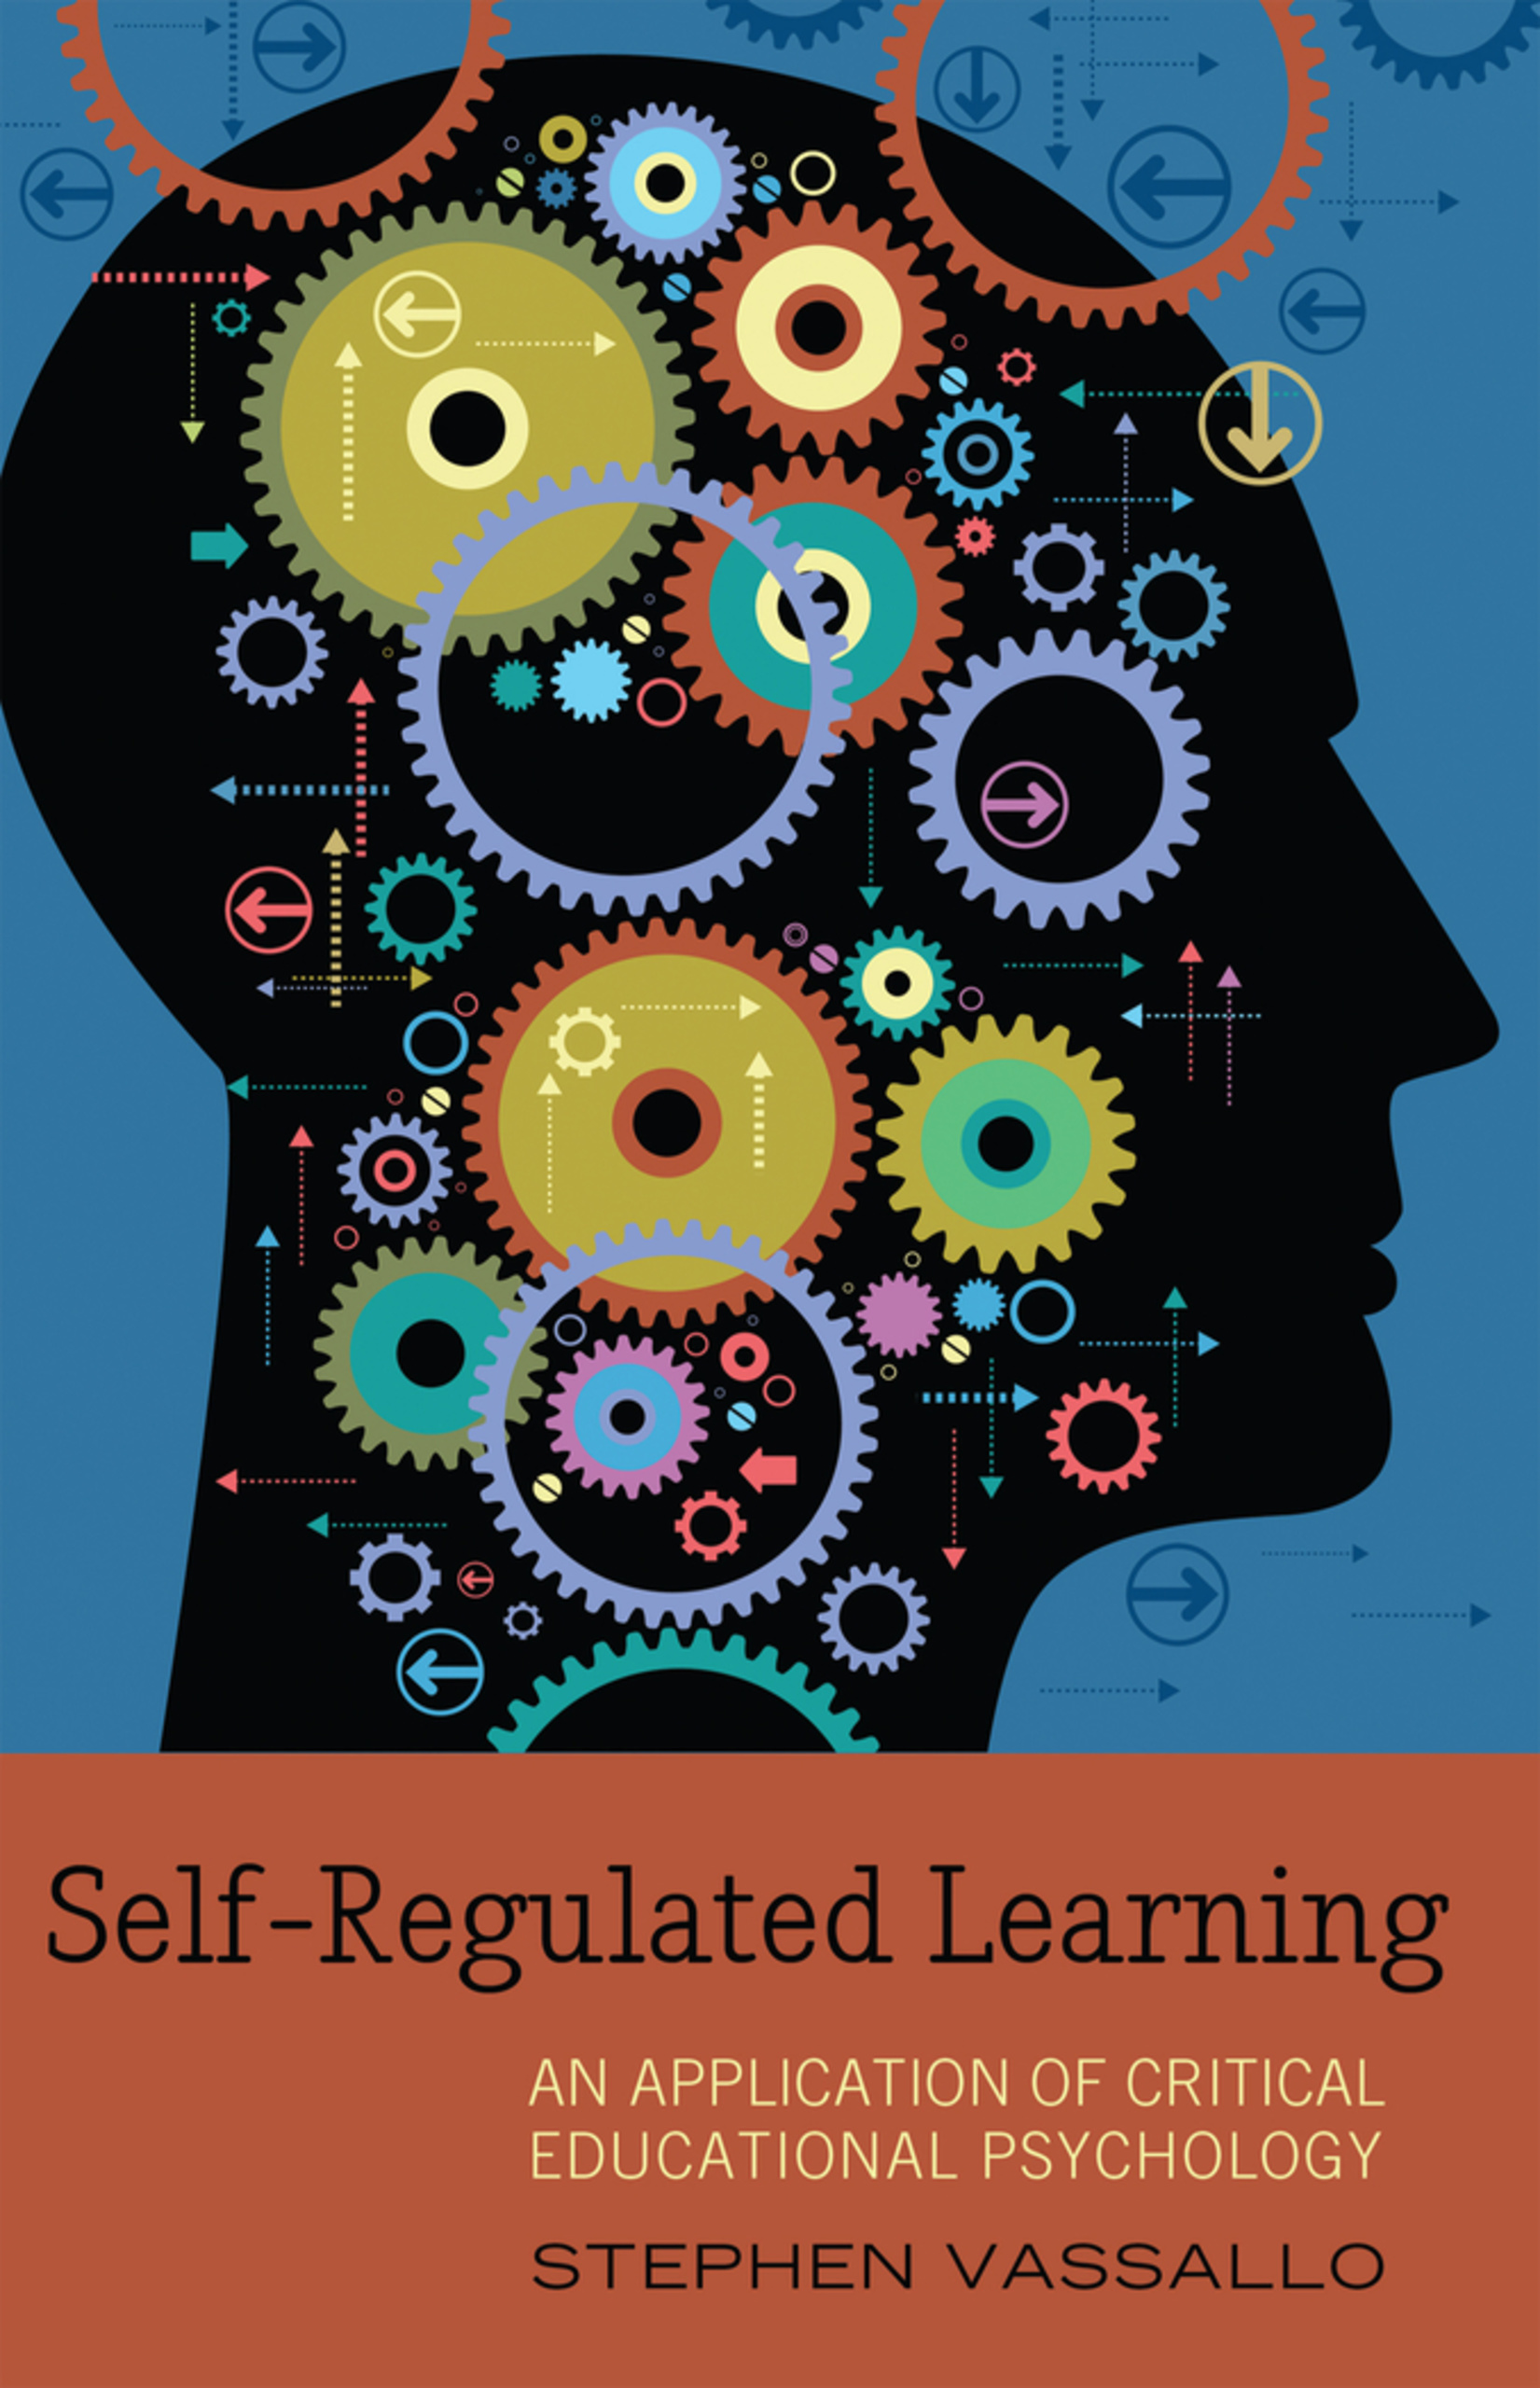 Title: Self-Regulated Learning